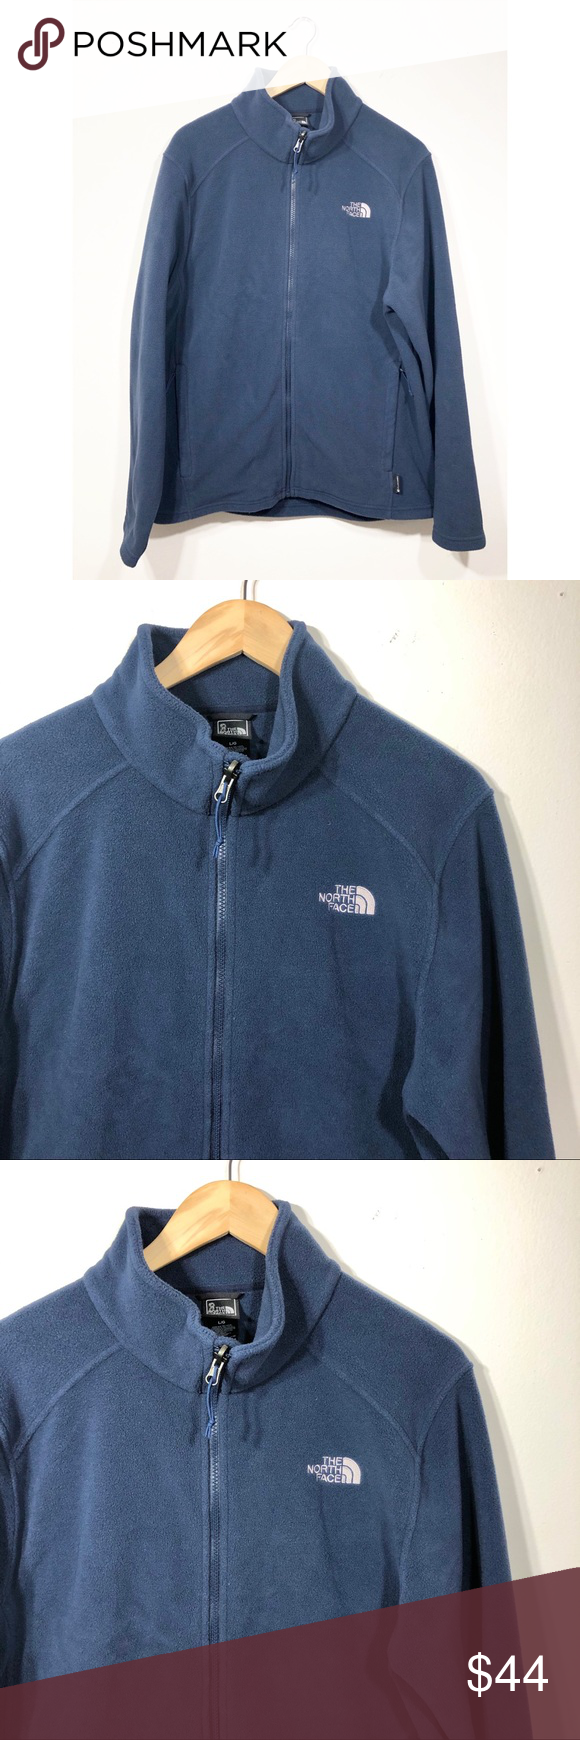 The North Face Men S Fleece Zip Up Jacket Make Sure To Follow So You Don T Miss New Inventory I Also Offer Bu North Face Mens The North Face North Face Jacket [ 1740 x 580 Pixel ]